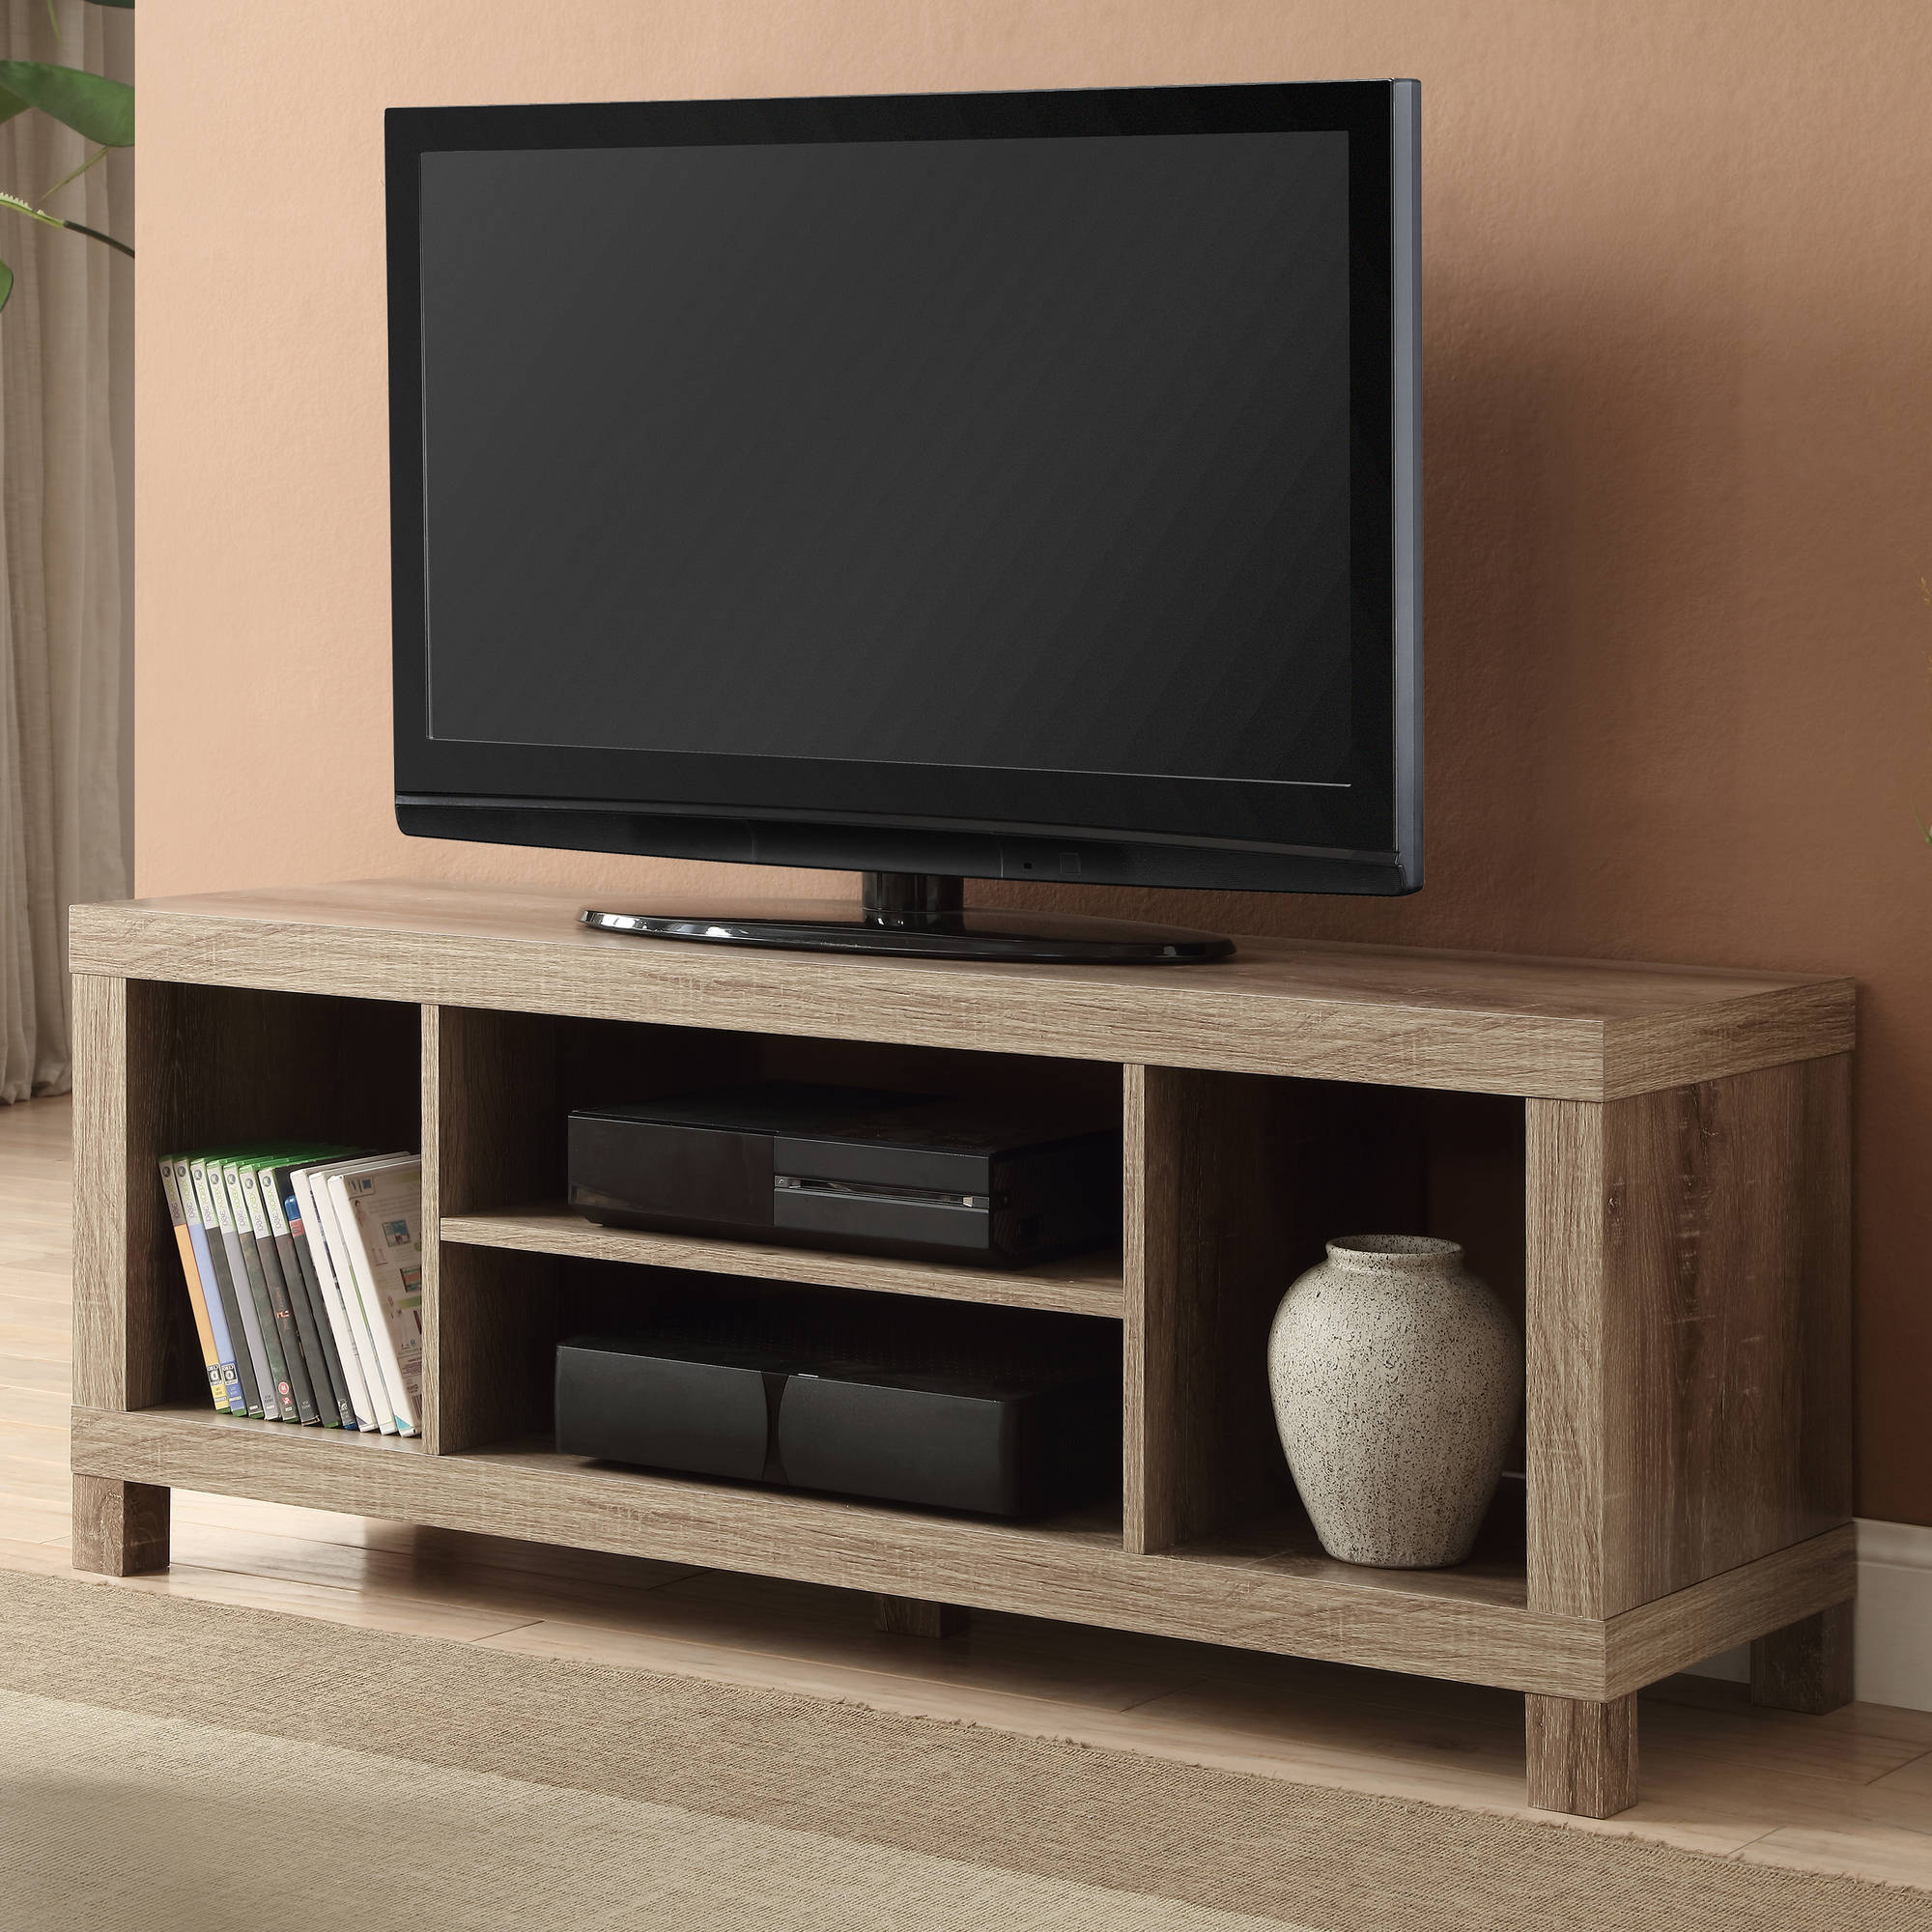 """Latest Wooden Tv Stands For Flat Screens Pertaining To Mainstays Tv Stand For Tvs Up To 42"""", Multiple Colors – Walmart (View 12 of 20)"""